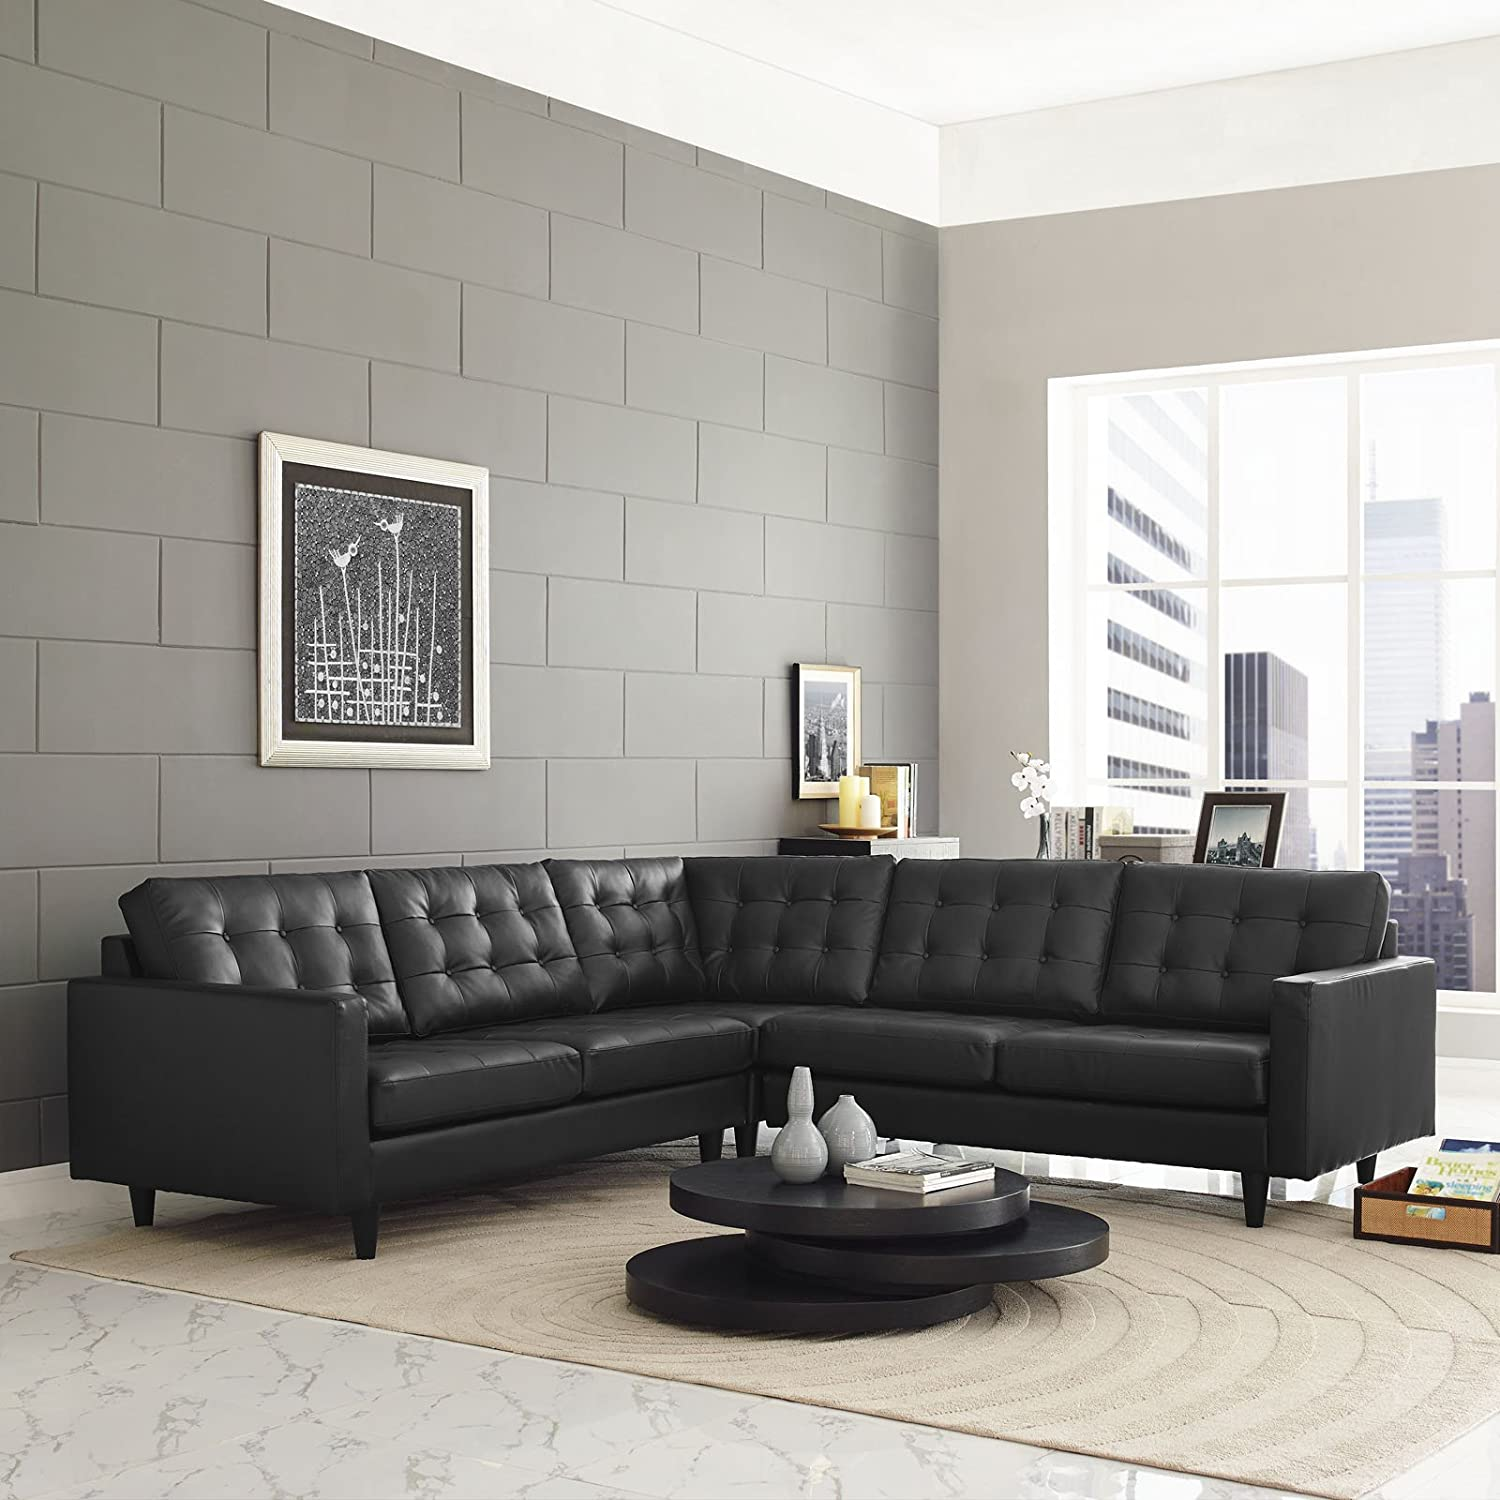 Empress 3 Piece Leather Sectional Sofa Set - Black